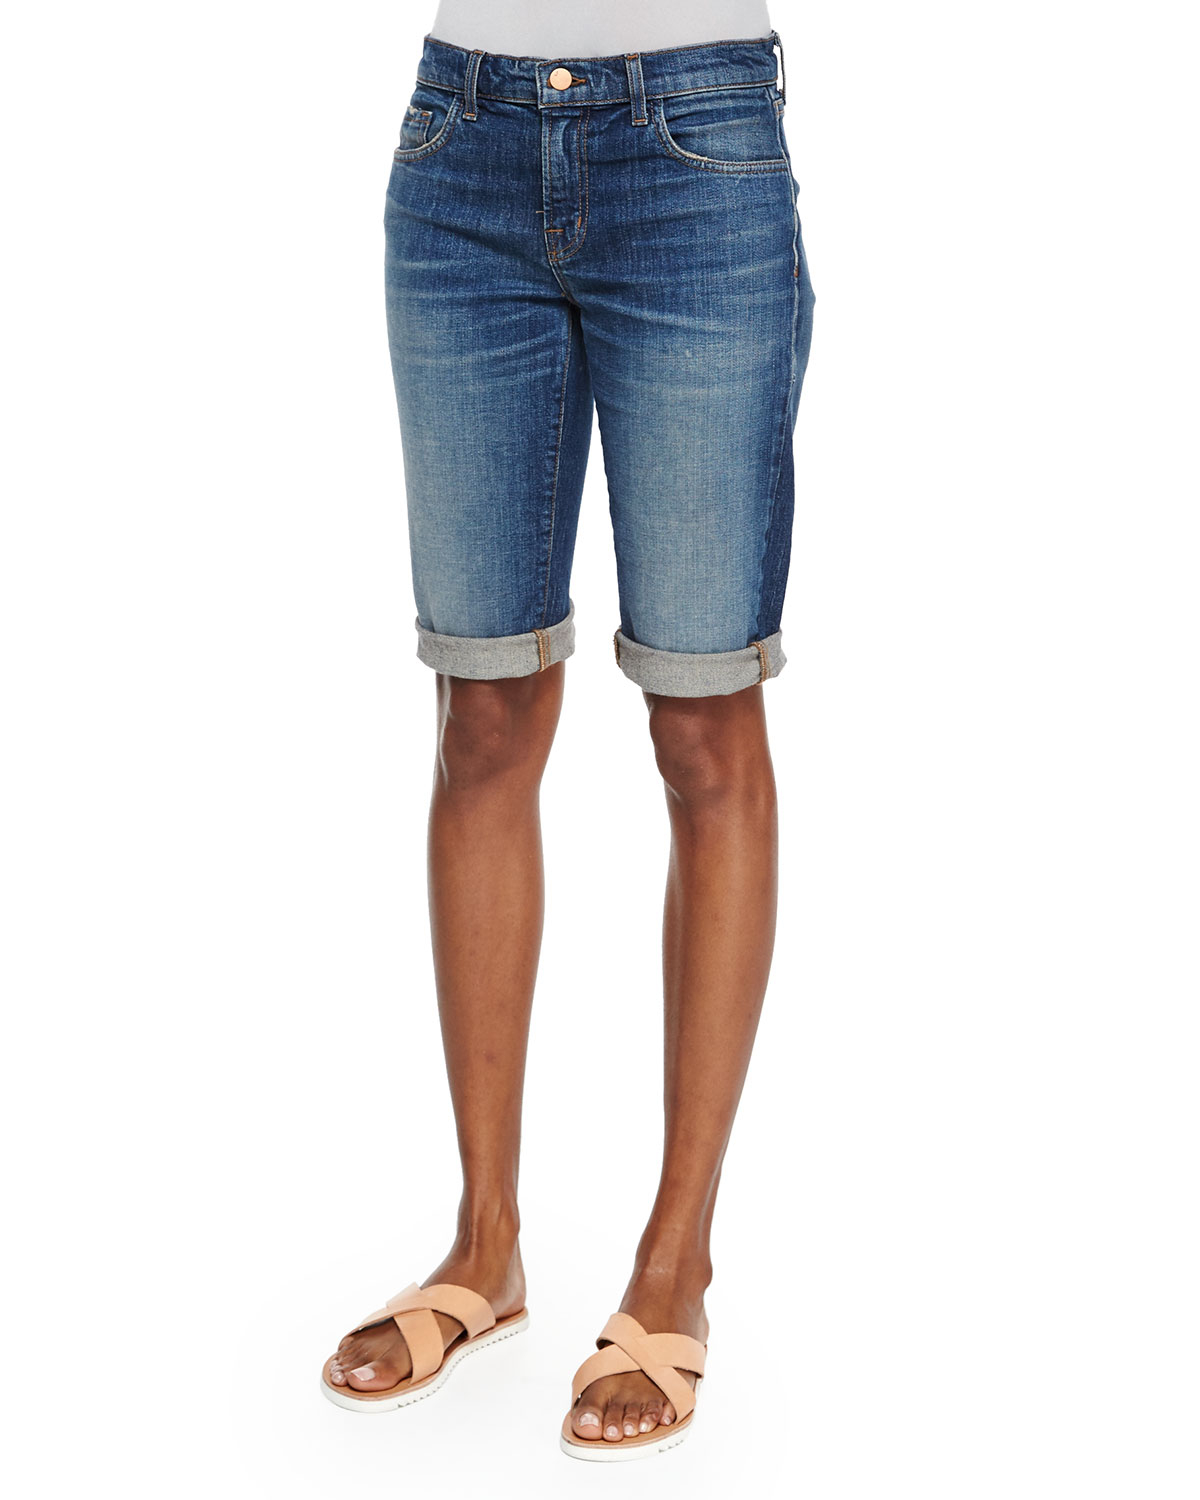 J brand Beau Stretch Bermuda Shorts in Blue (REBOUND) | Lyst